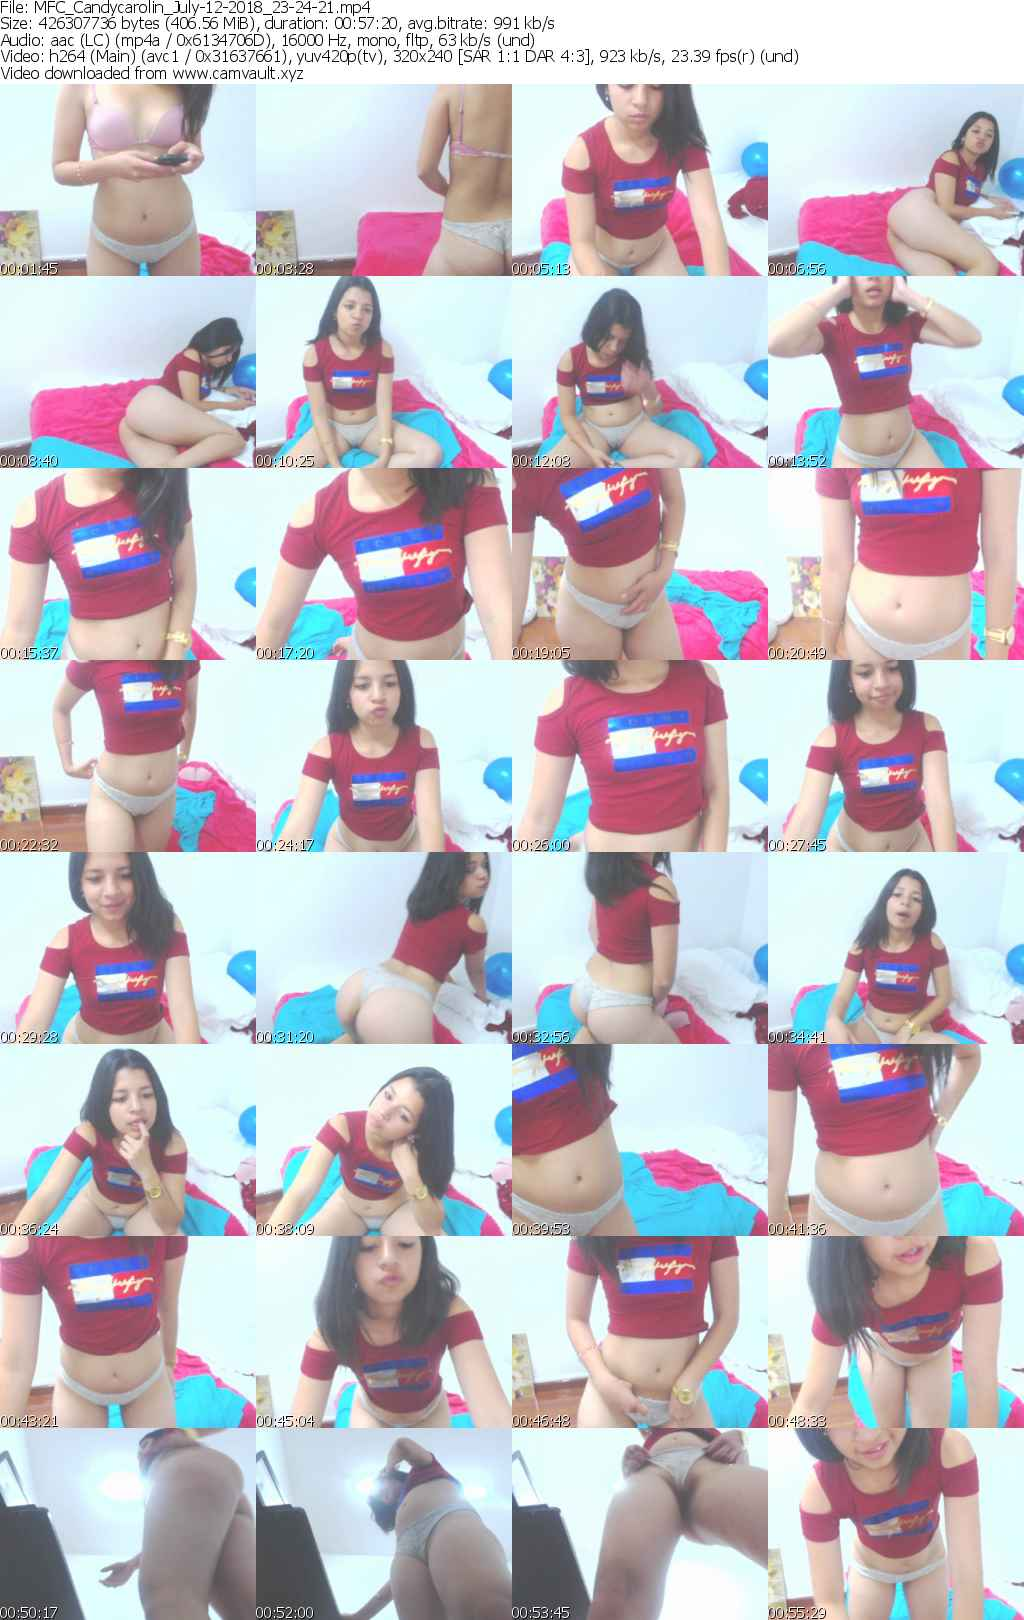 Video preview for model Candycarolin